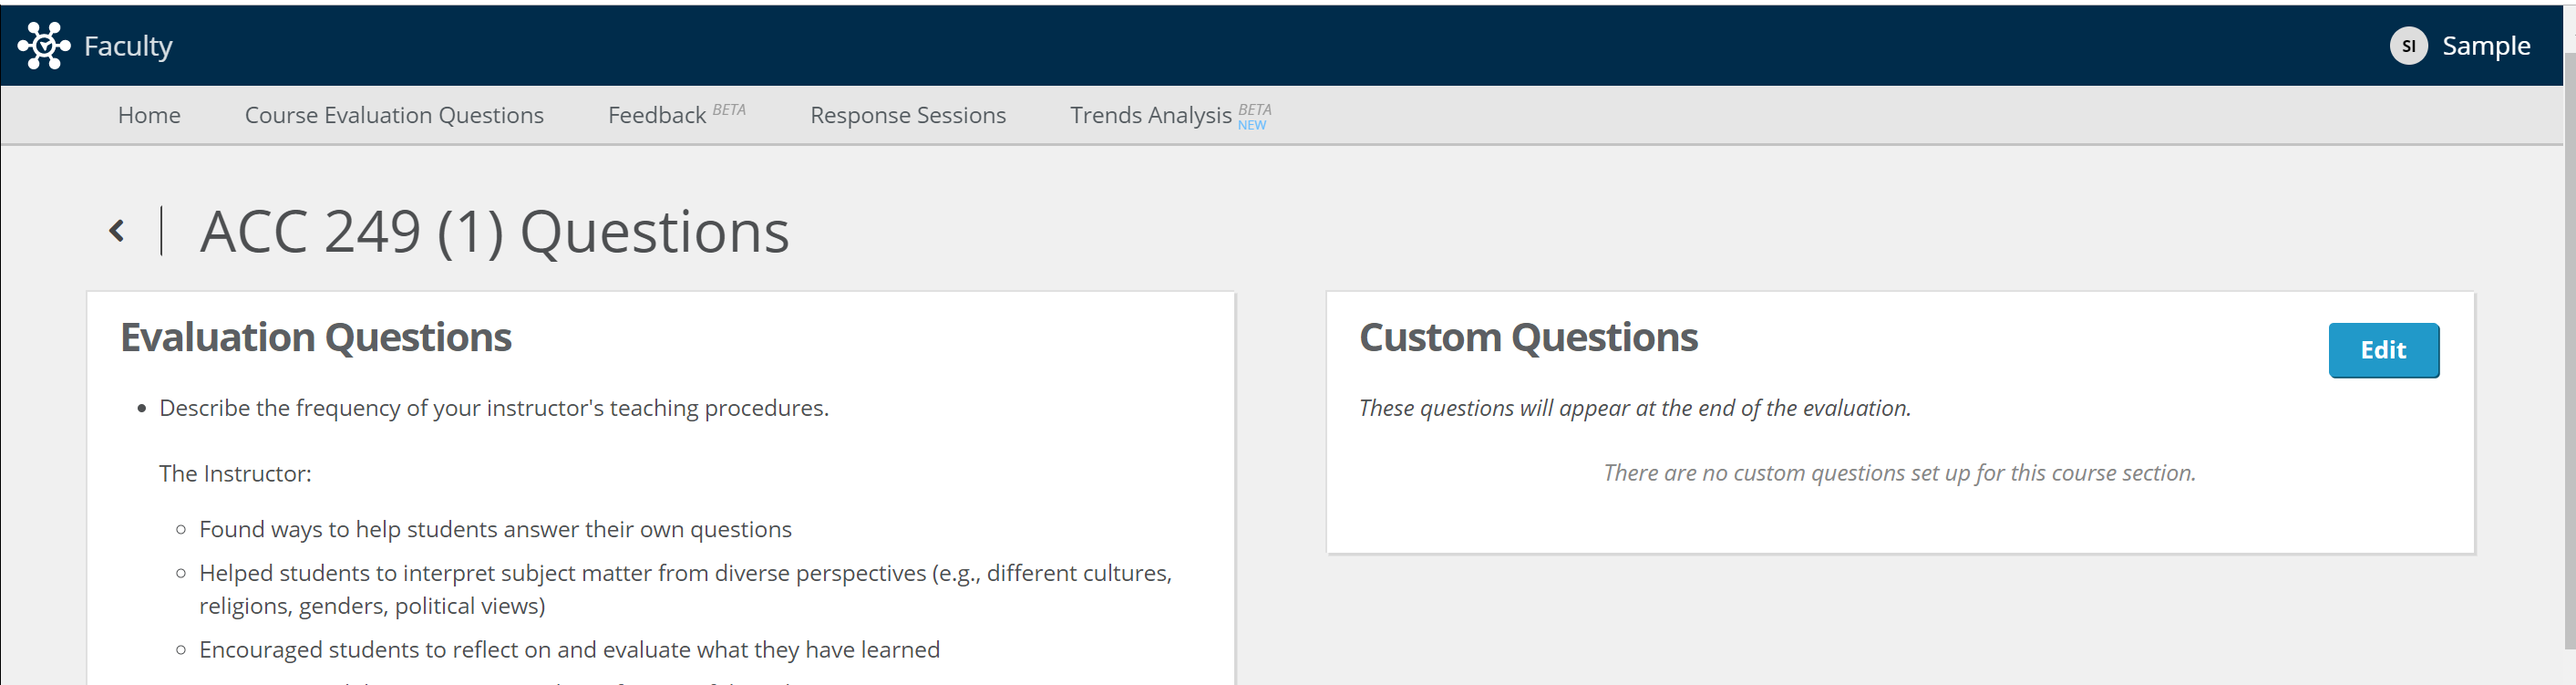 Adding Custom Questions To A Course Section As An Instructor